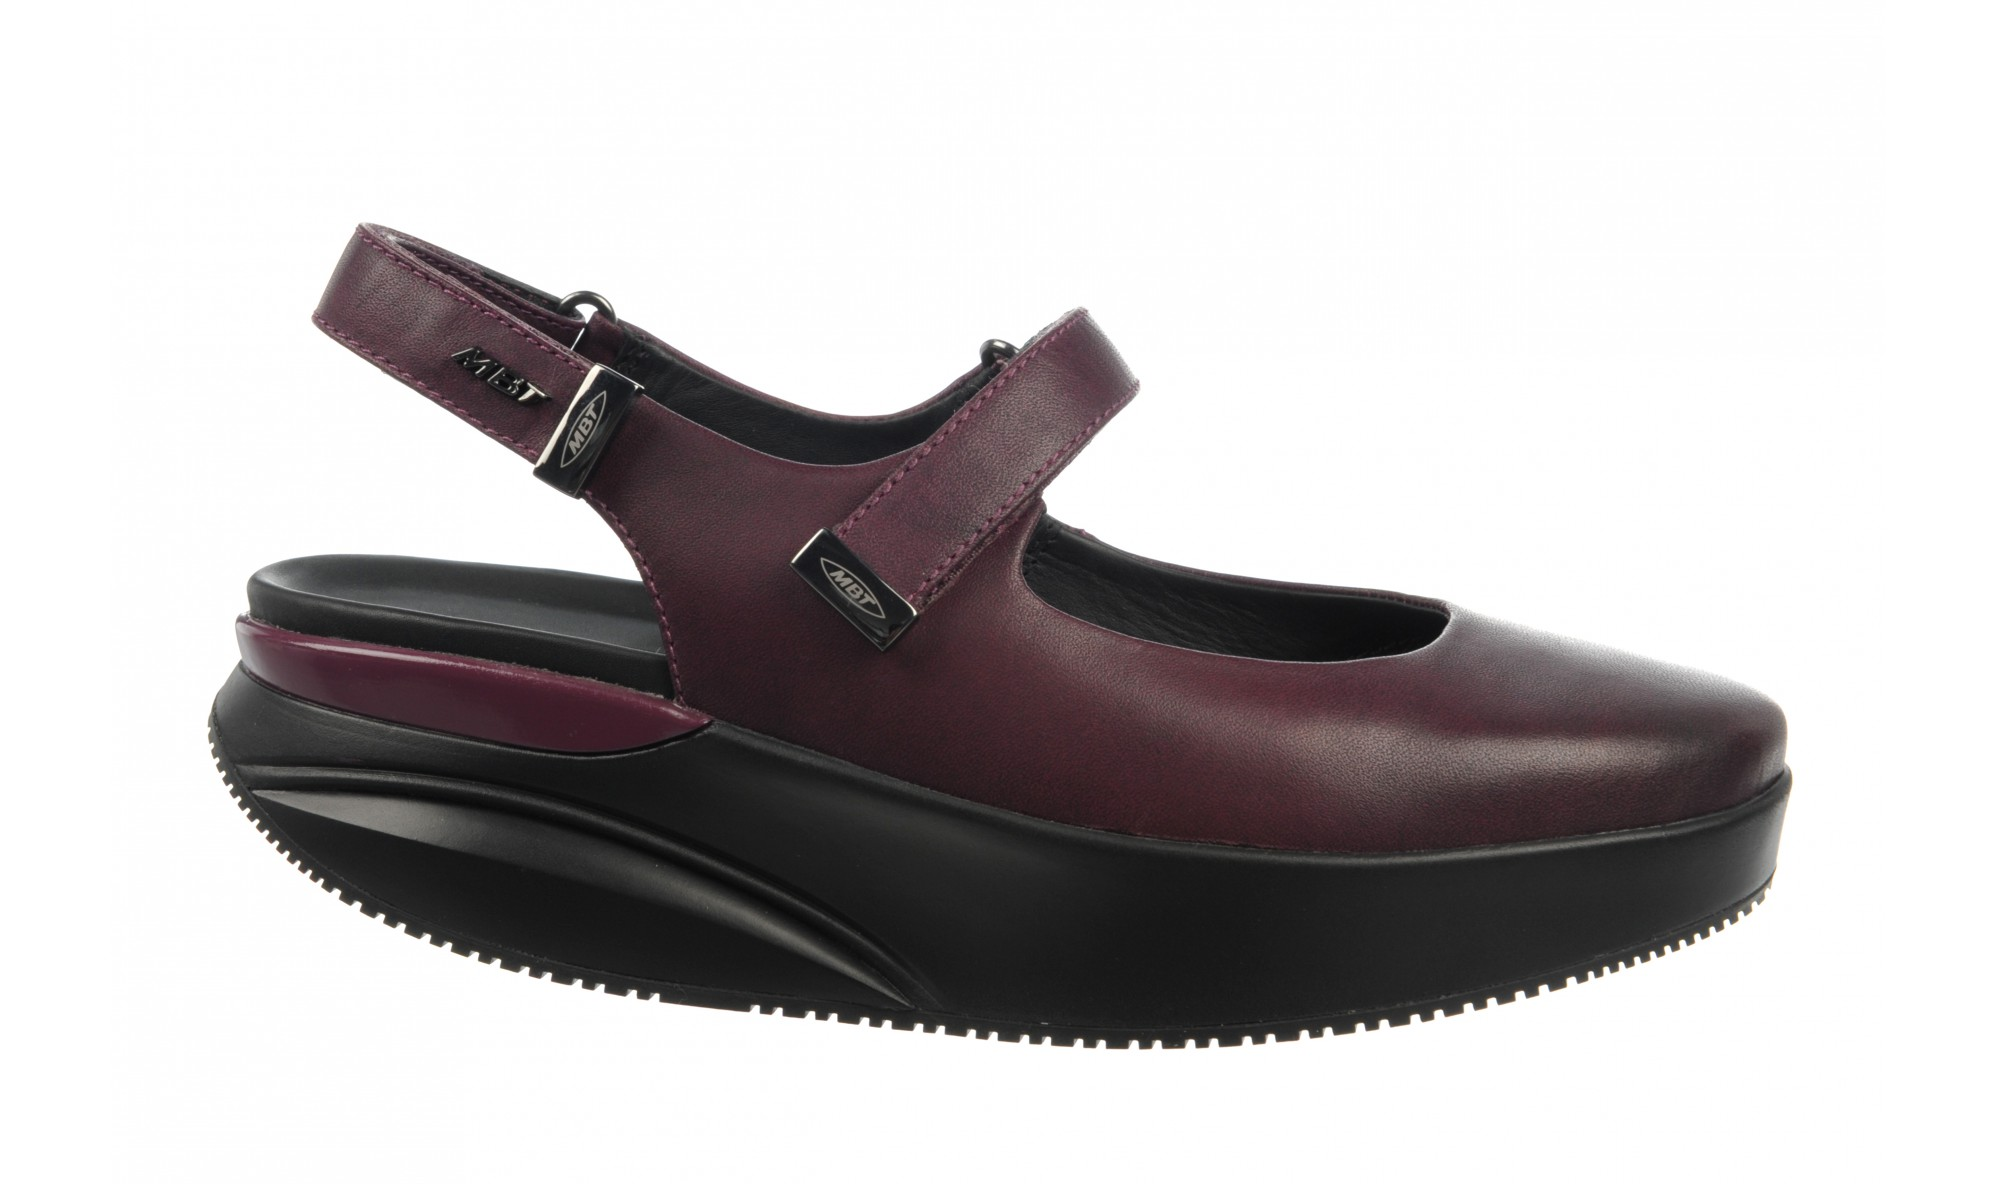 MBT Women's Koffi 5 Sling Back Grape Wine